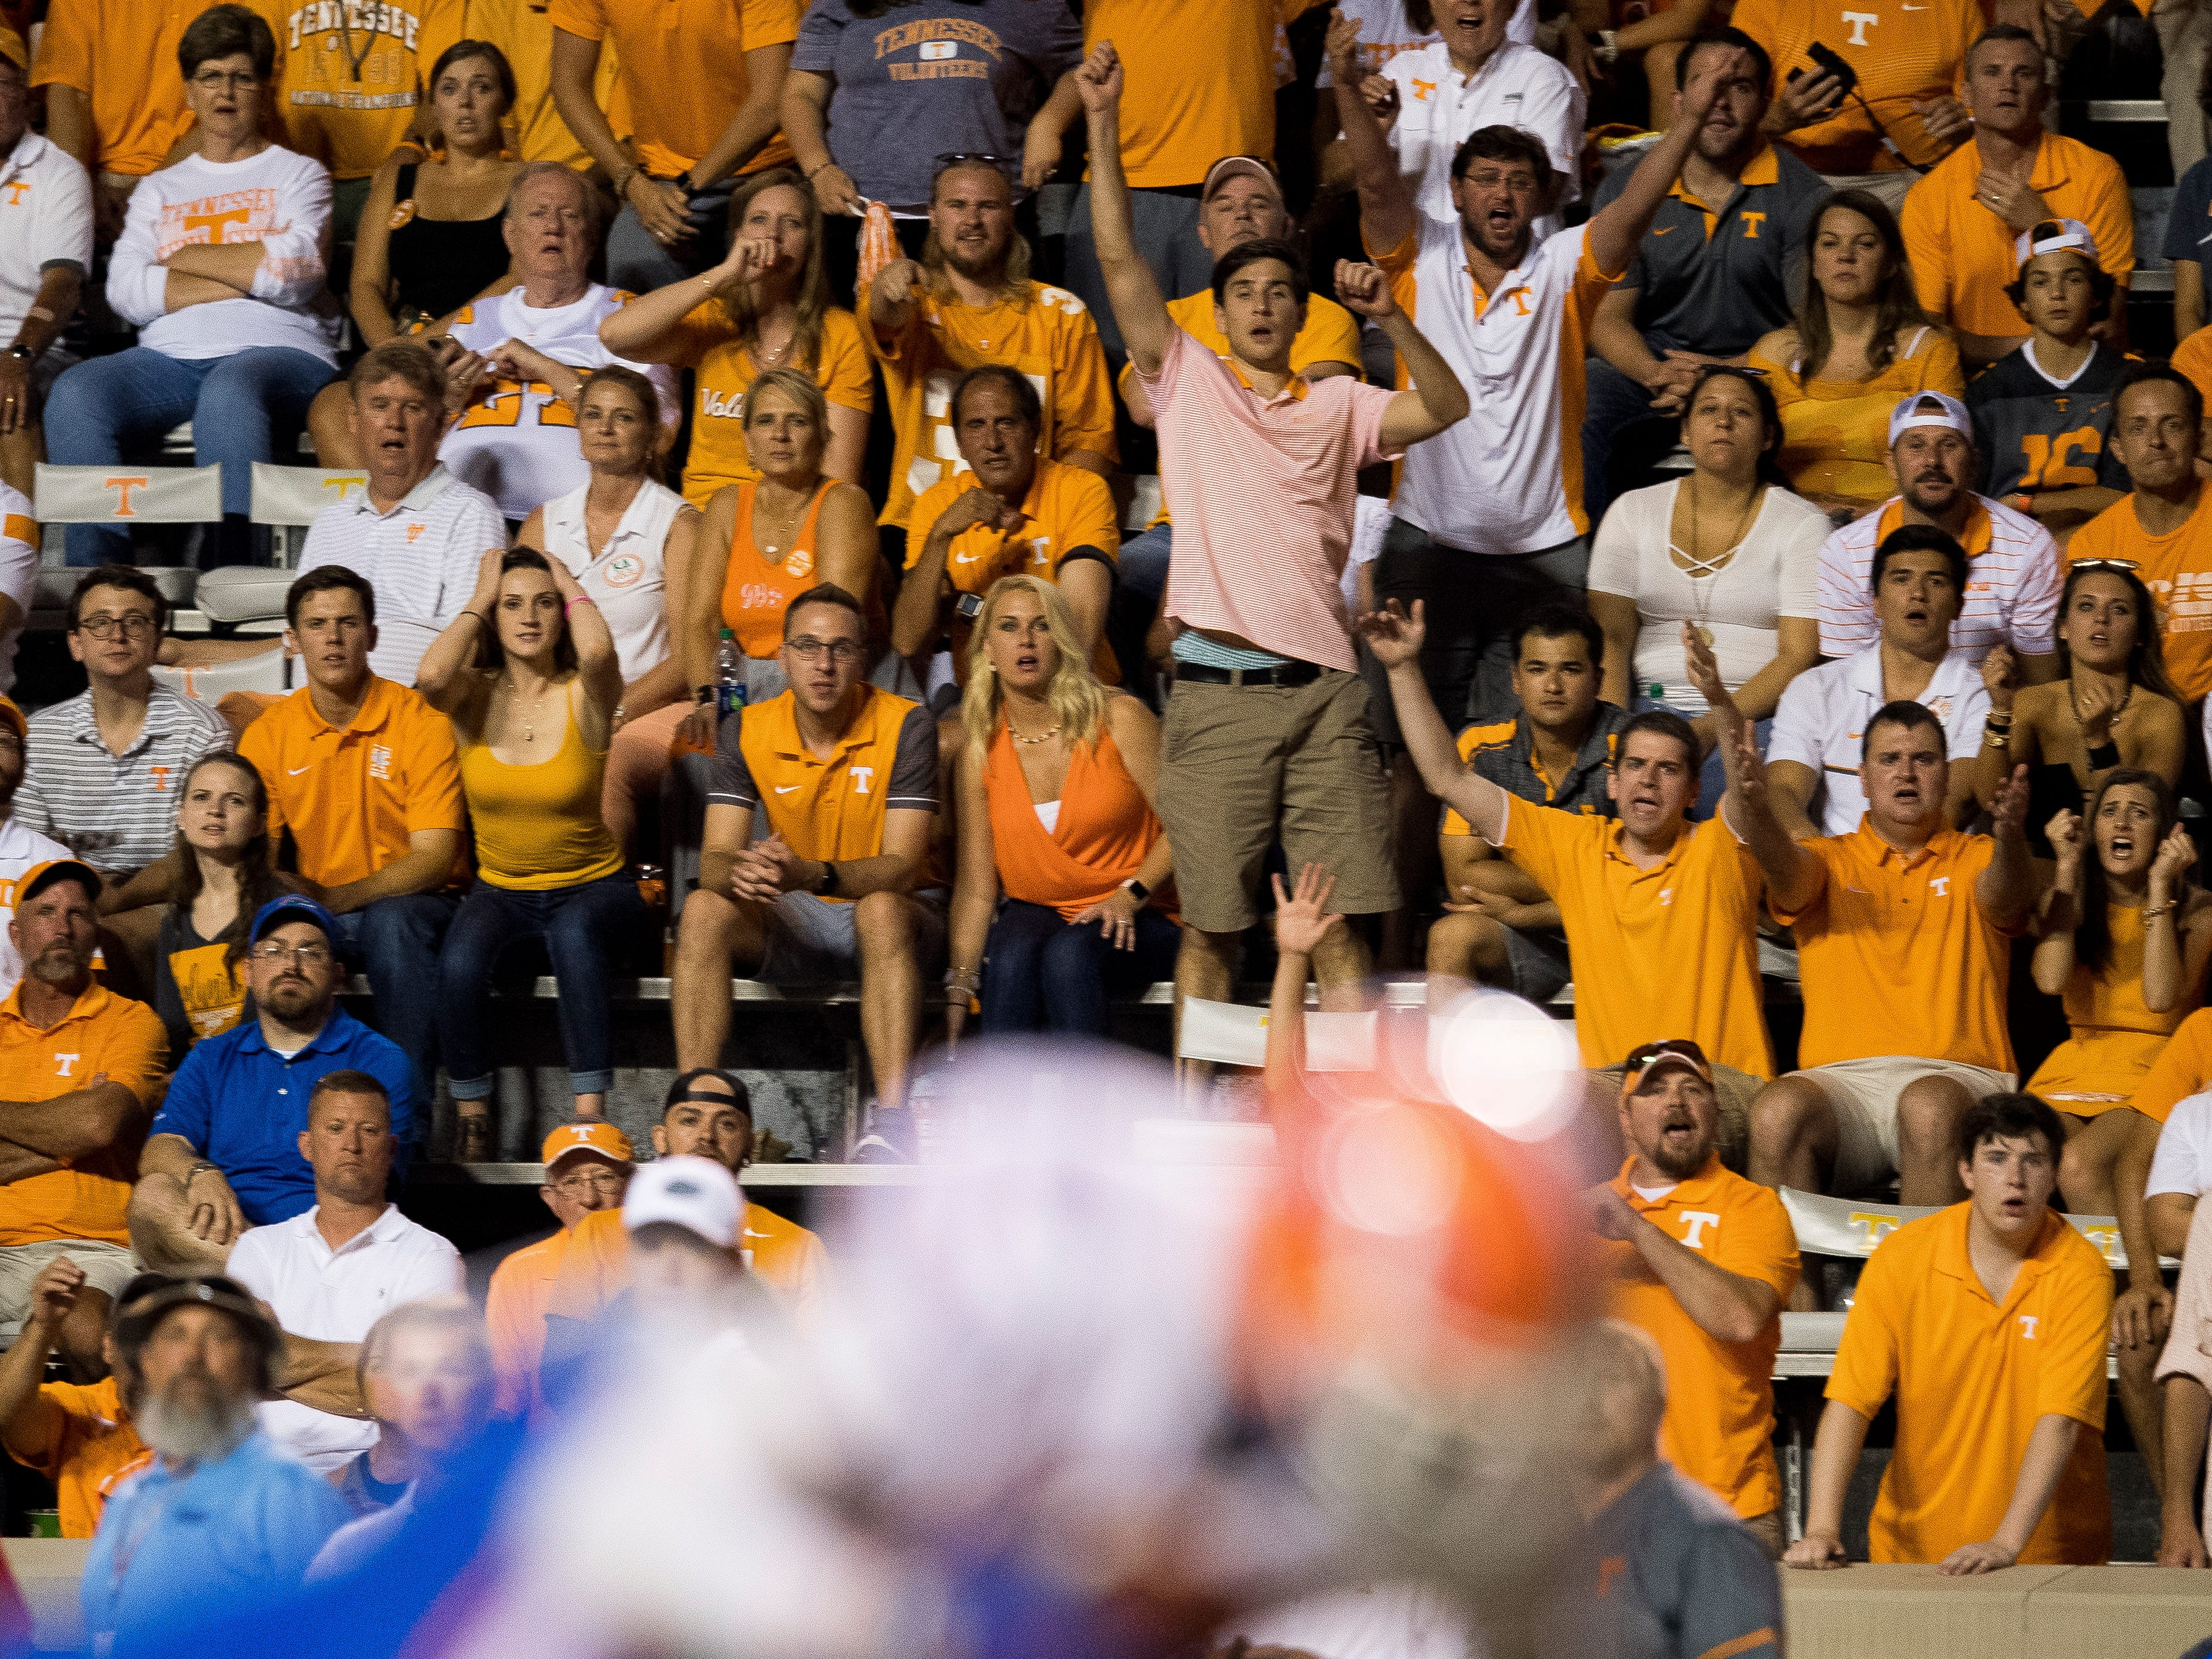 Tennessee fans react after a pass intended for Tennessee wide receiver Brandon Johnson (7) is intercepted by Florida defensive back Brad Stewart, Jr. (2) during the Tennessee Volunteers' game against Florida in Neyland Stadium on Saturday, Sept. 22, 2018. The interception was Tennessee quarterback Jarrett Guarantano's second interception and the Vols' sixth turnover of the game.